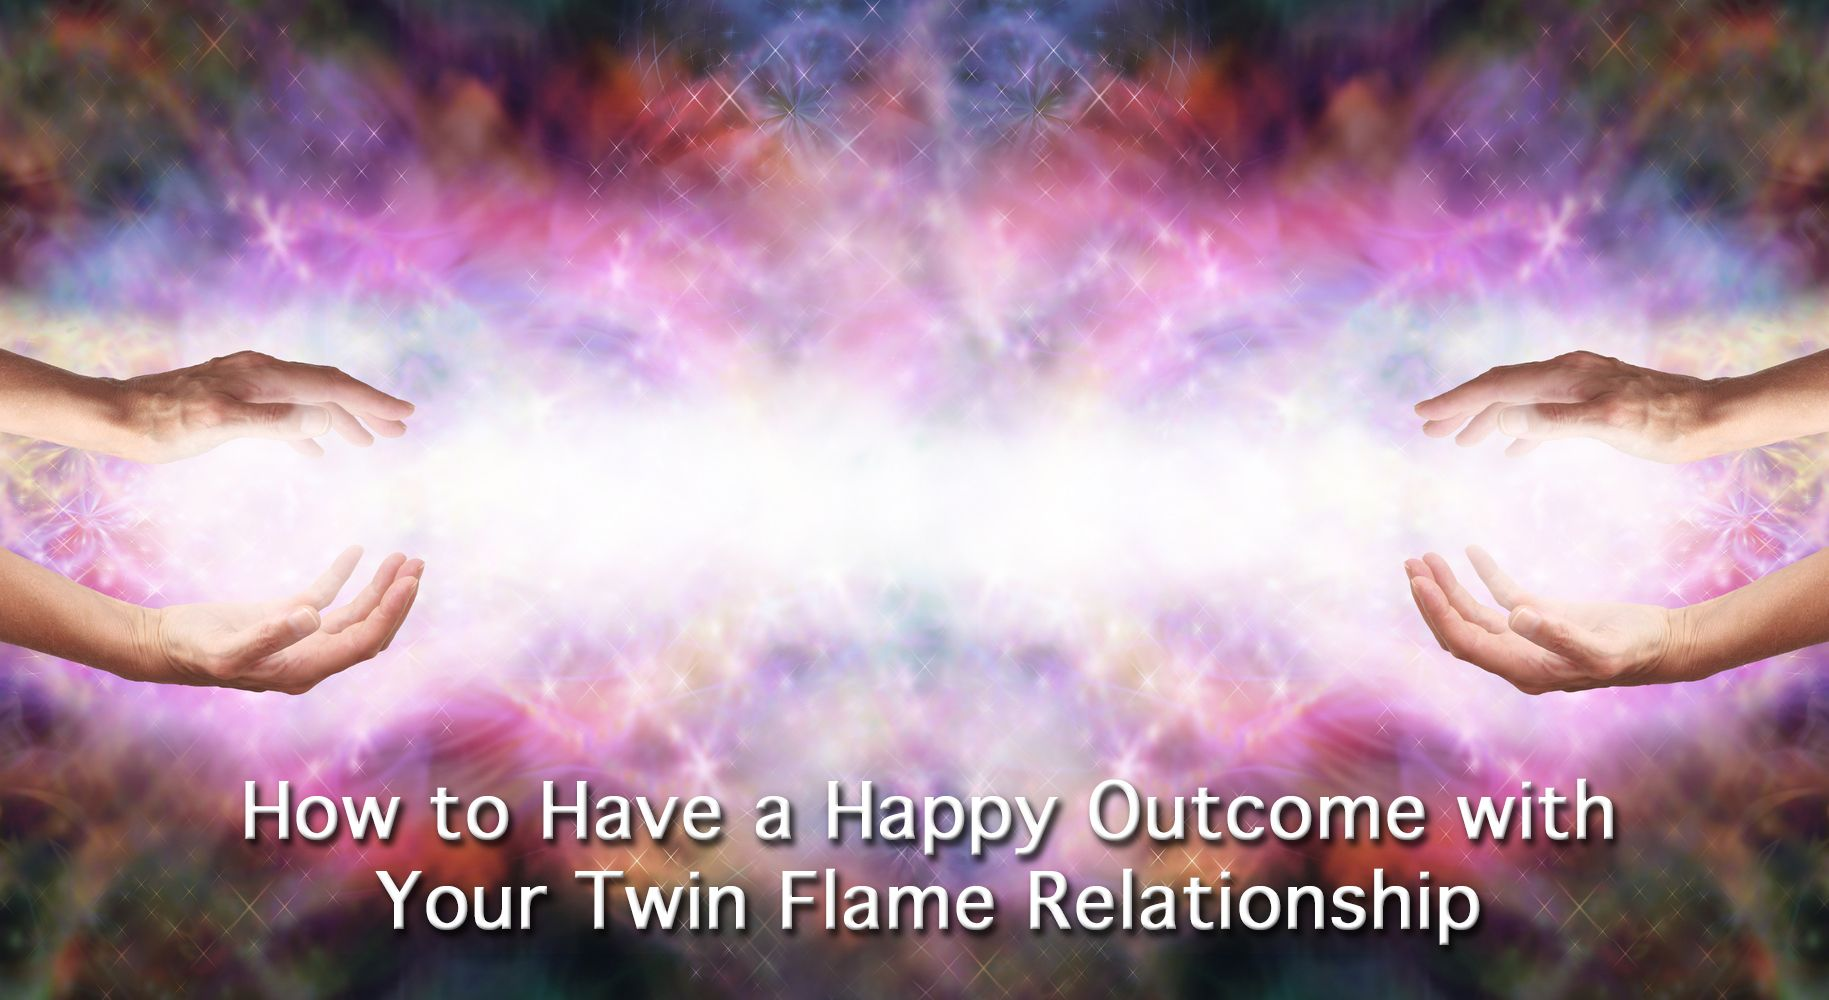 Why Twin Flames Get so Many Signs from the Universe